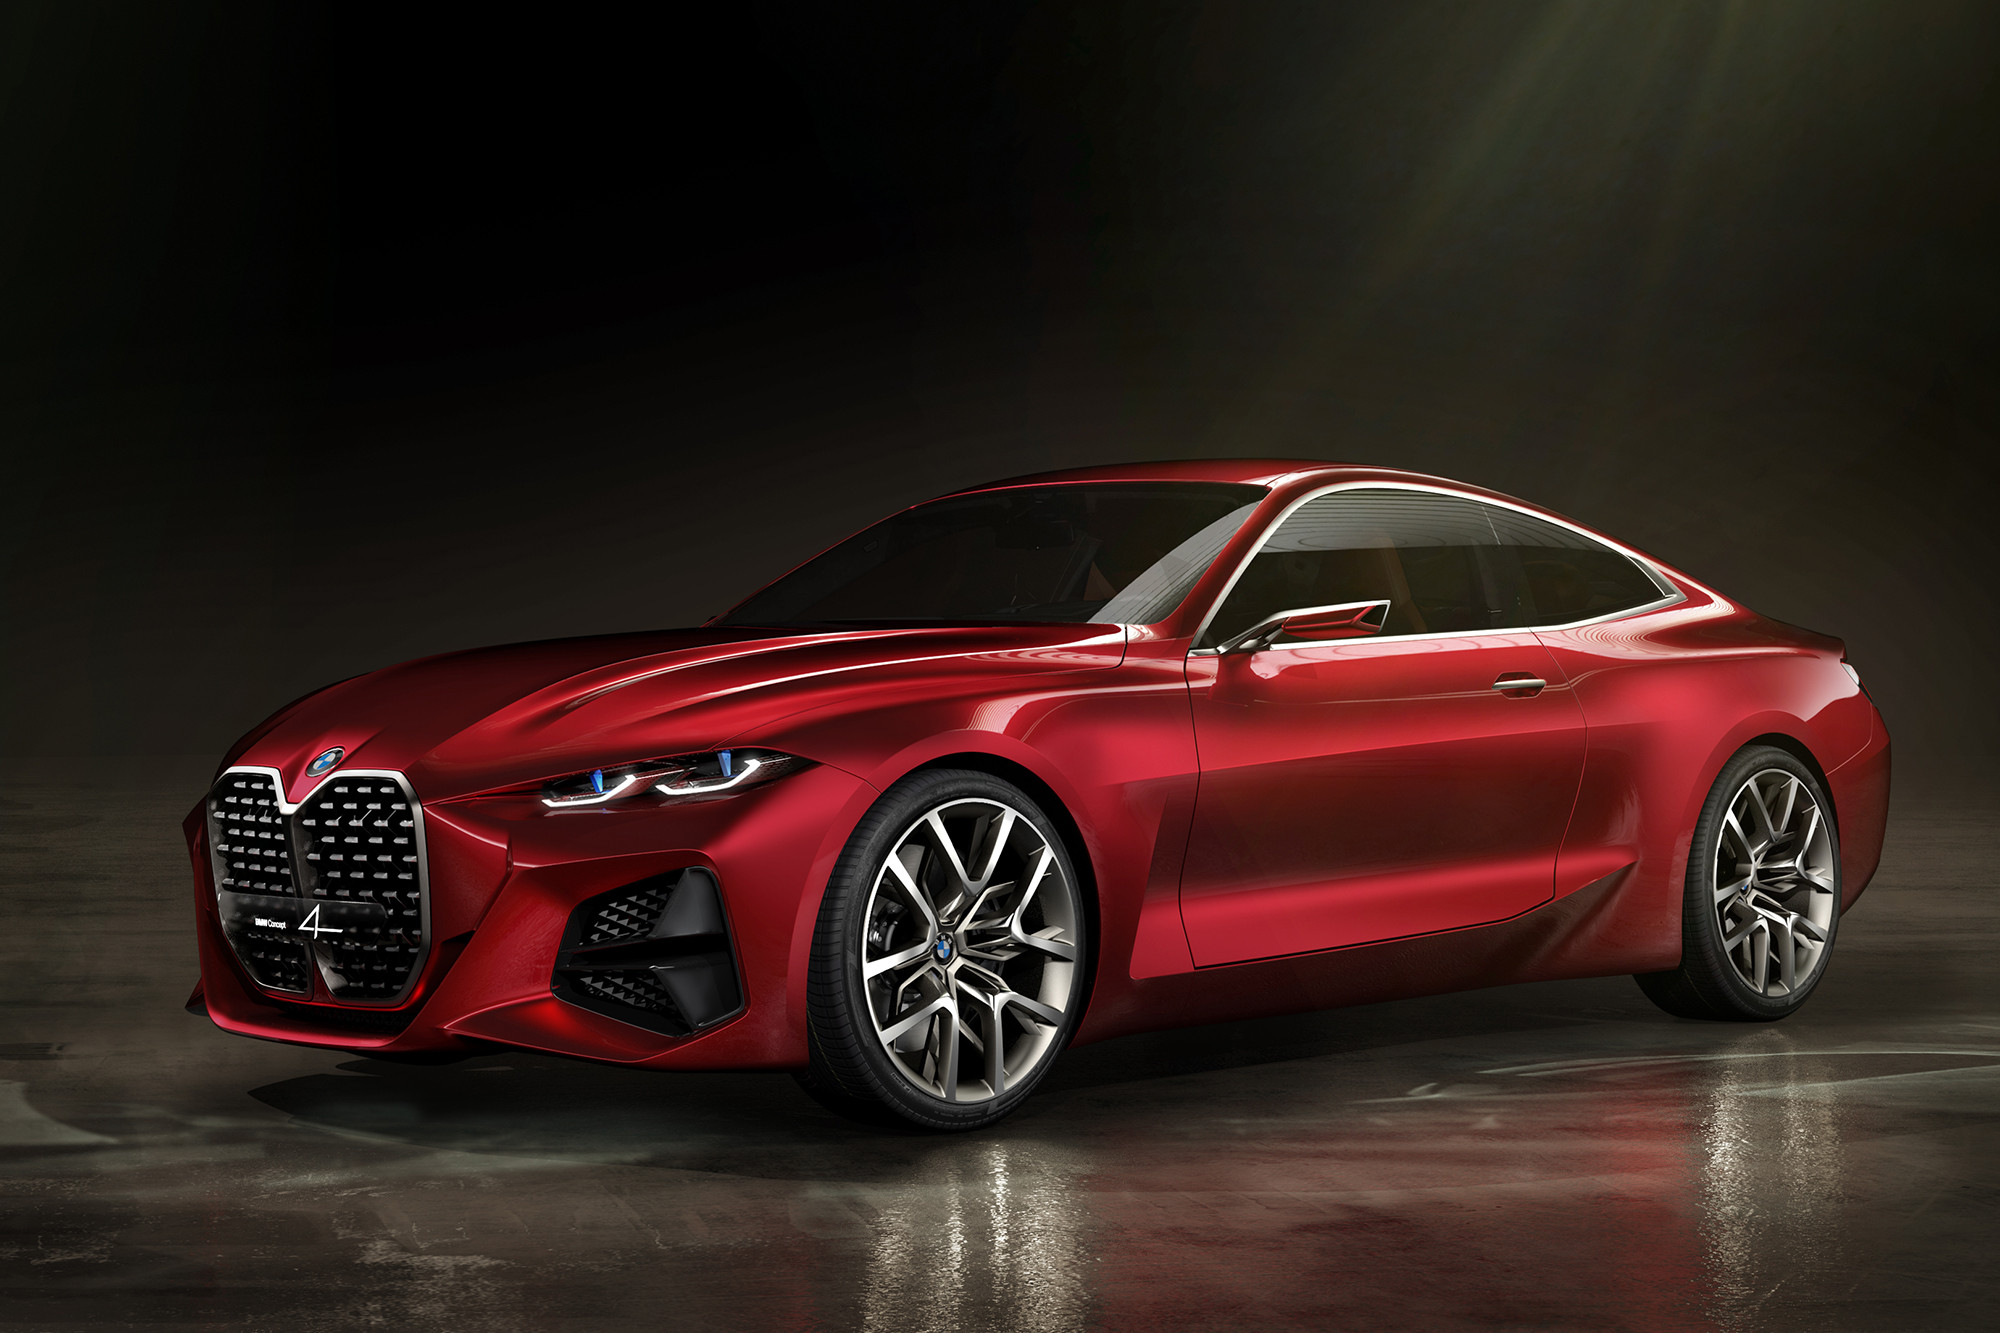 bmw-concept-4-concept-01-angle--exterior--front--red.jpg